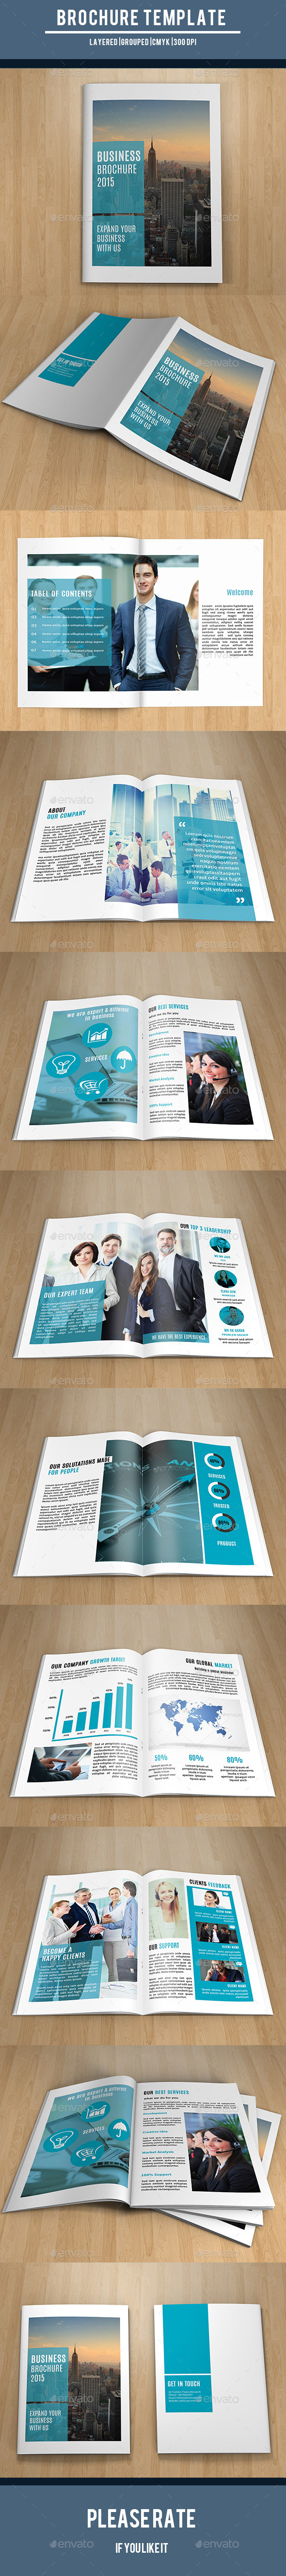 GraphicRiver Corporate Brochure Template-V218 10655599